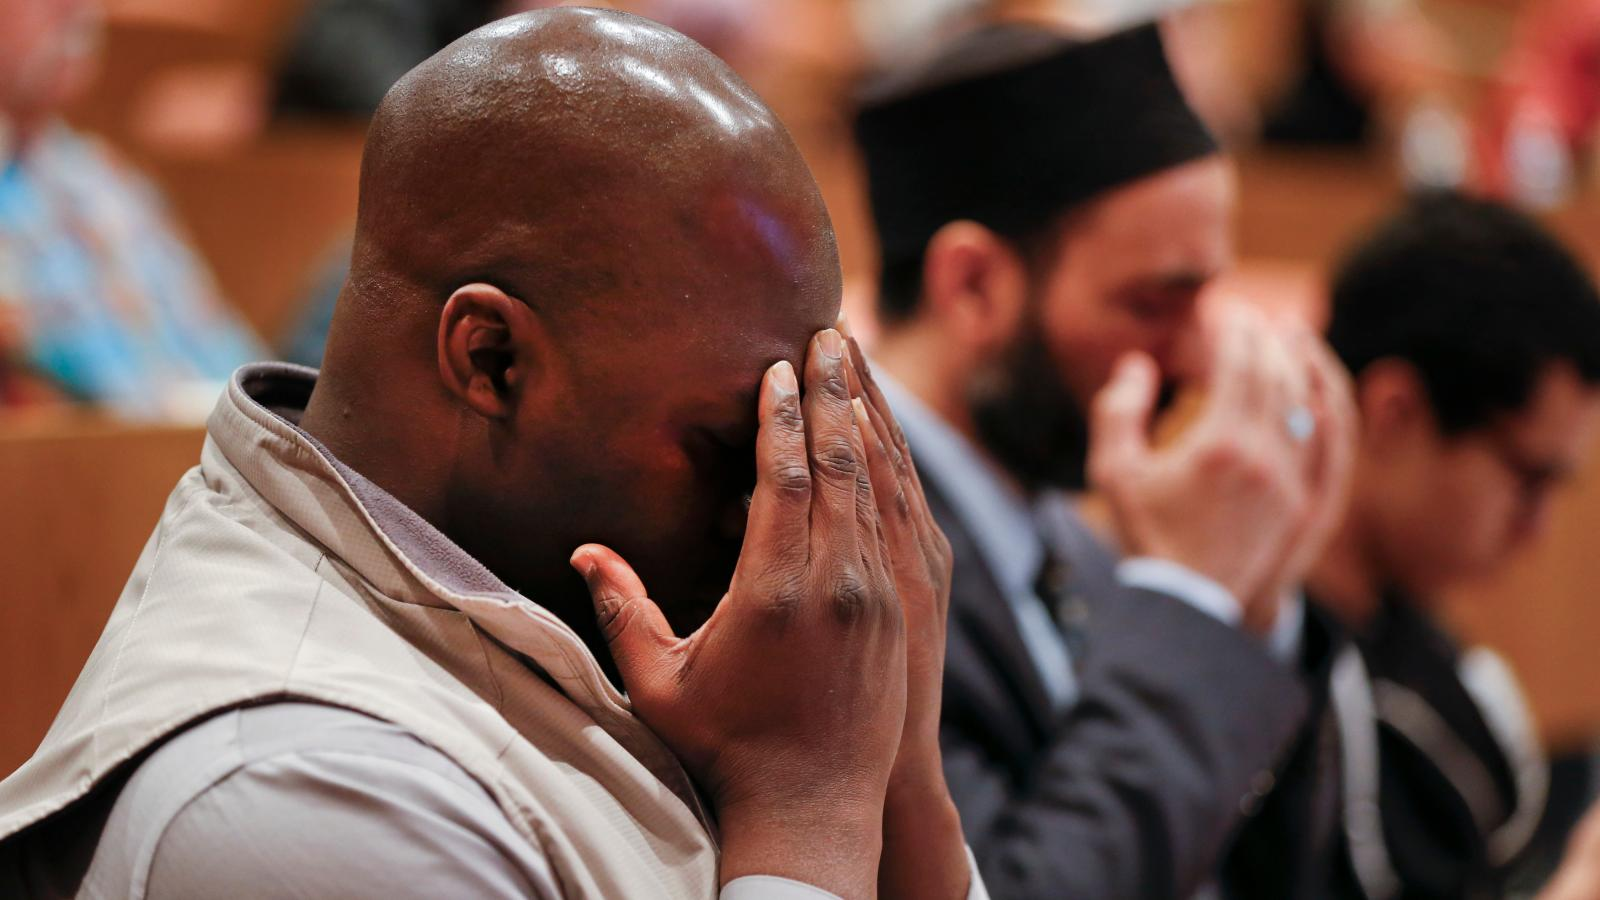 The unapologetic racial profiling of Muslims has become